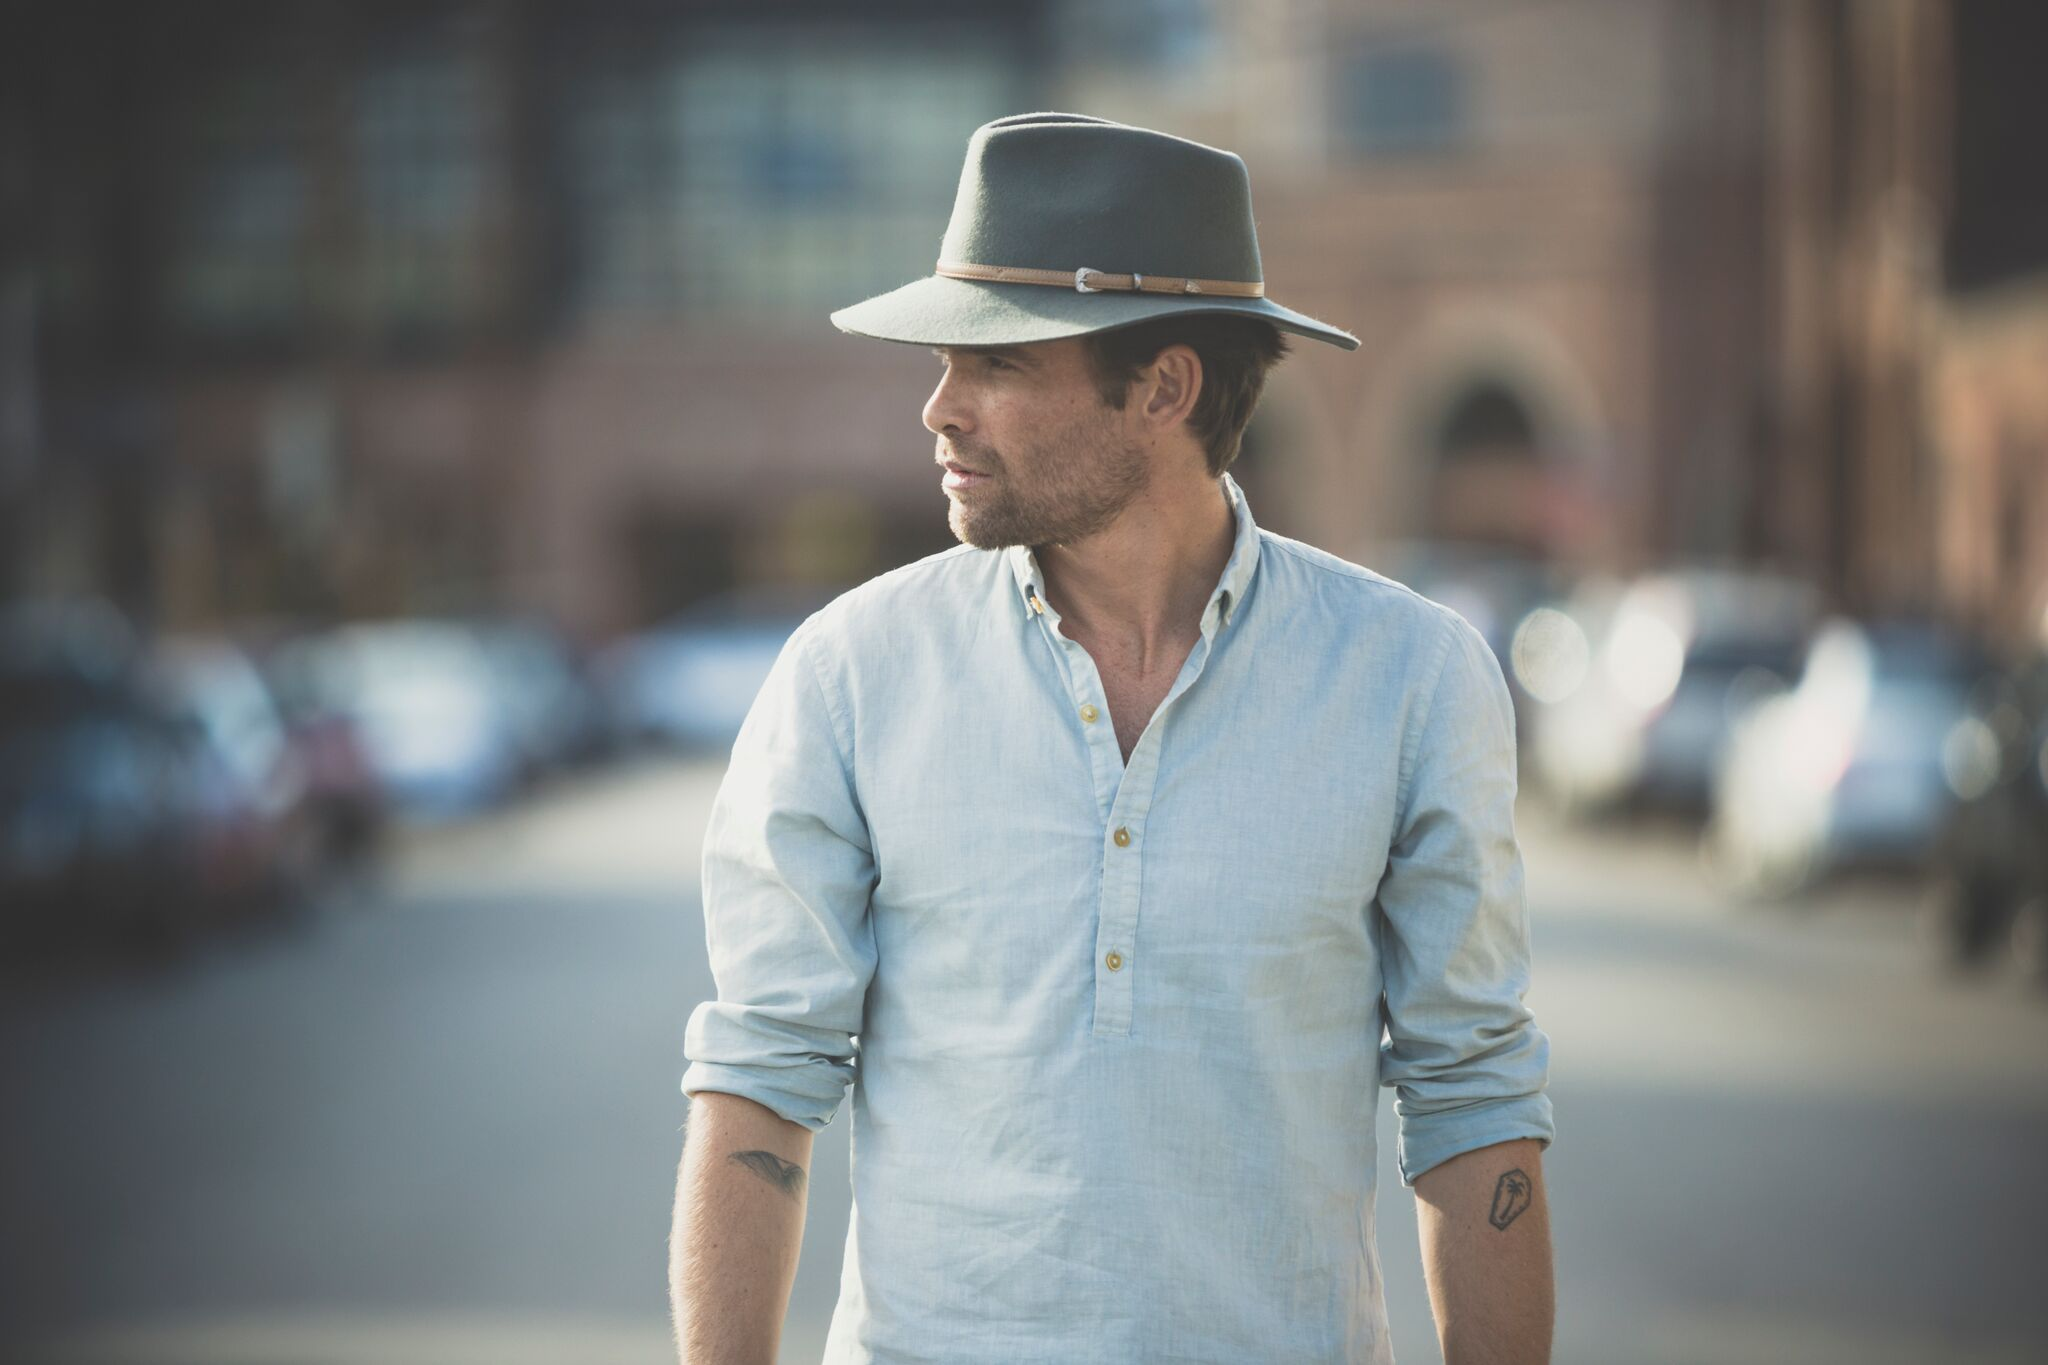 Anatomy of a Hat: Guide to Hat Terms